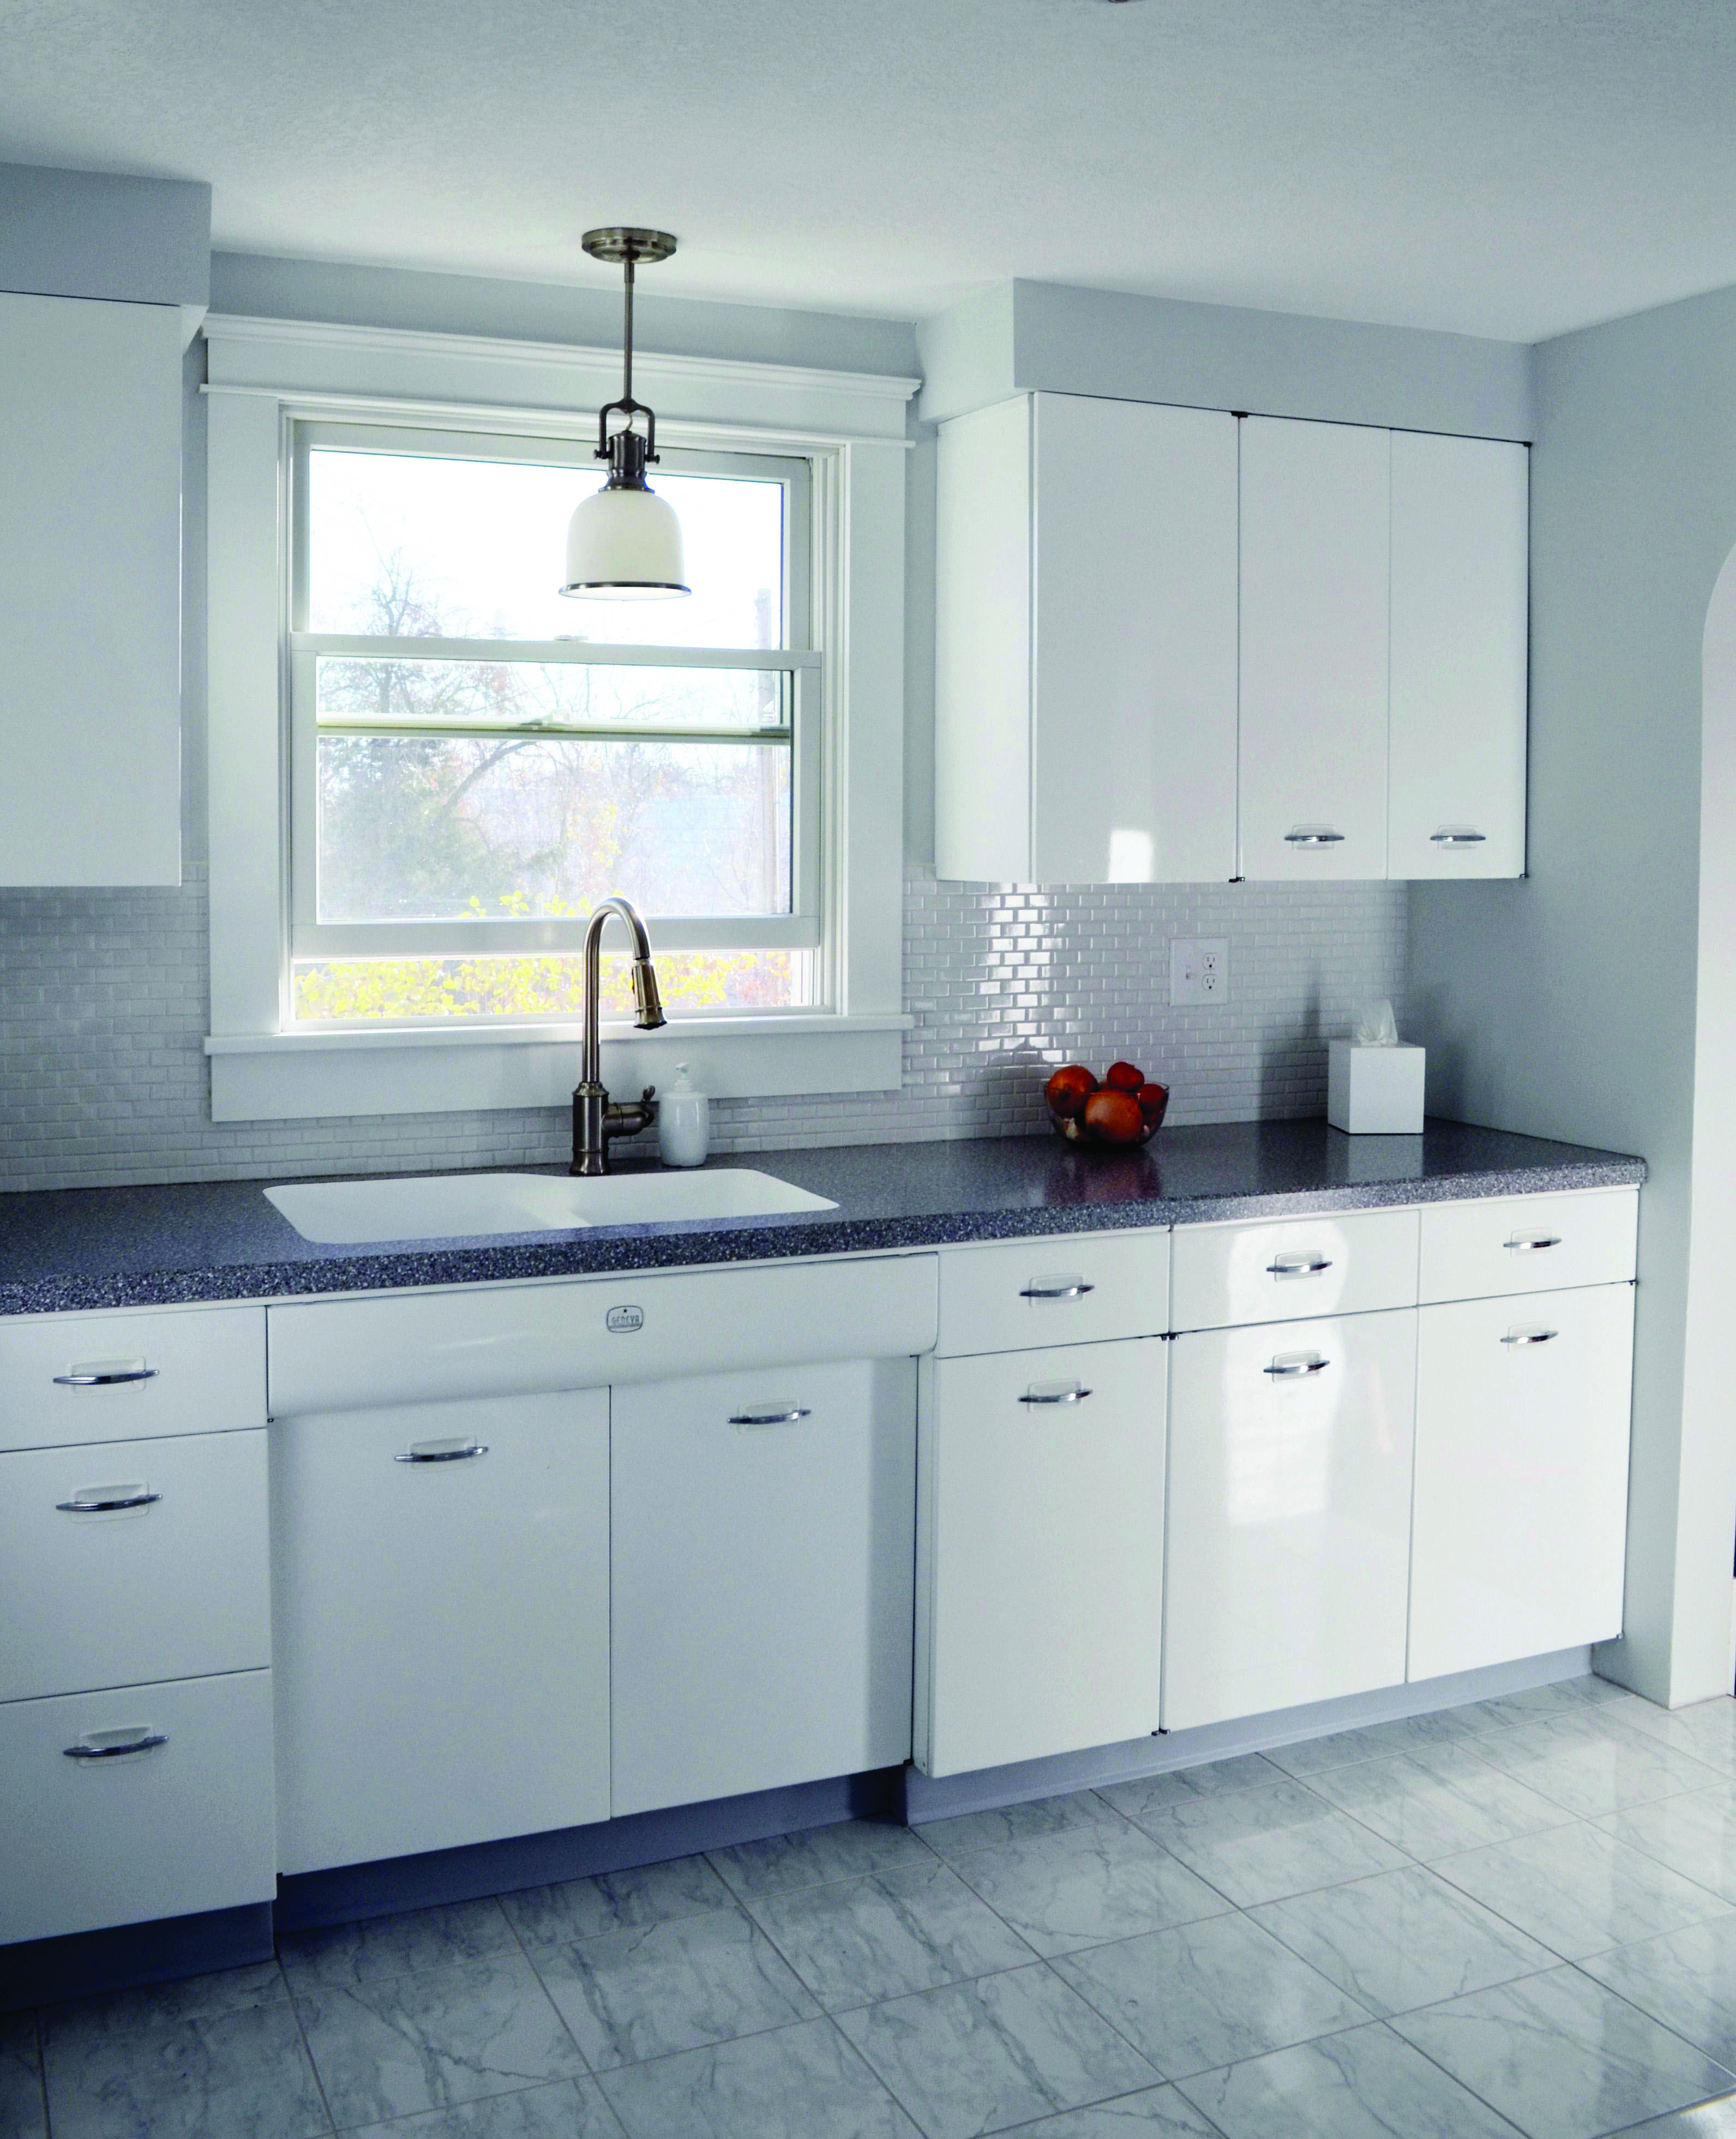 16 Metal Kitchen Cabinet Ideas (With images) | Metal ...